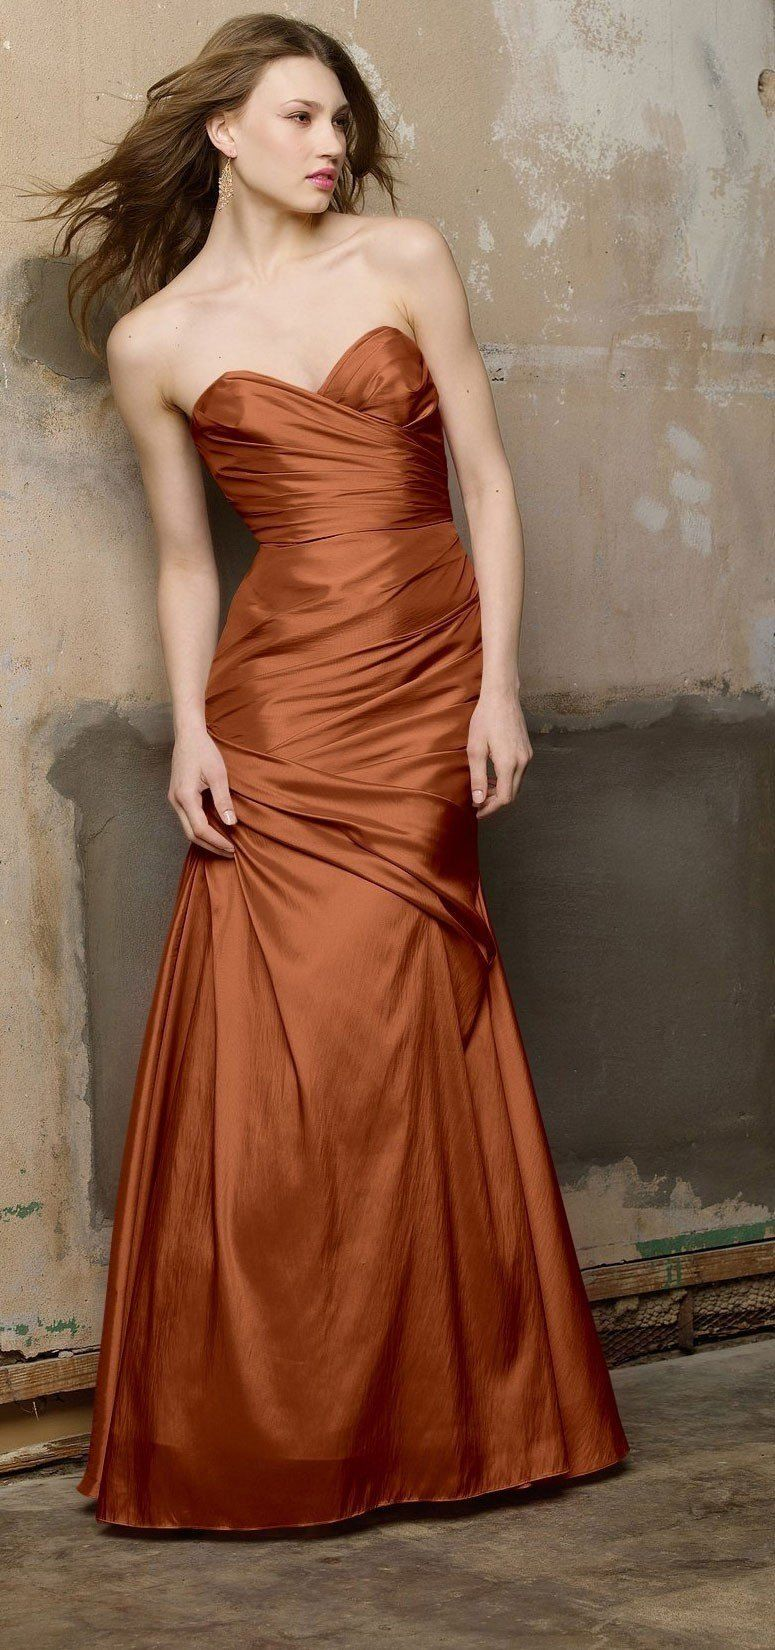 Copper colored bridesmaid dresses image collections braidsmaid copper wedding dress google search copper wedding couture copper wedding dress google search brown wedding dressesbride ombrellifo Image collections